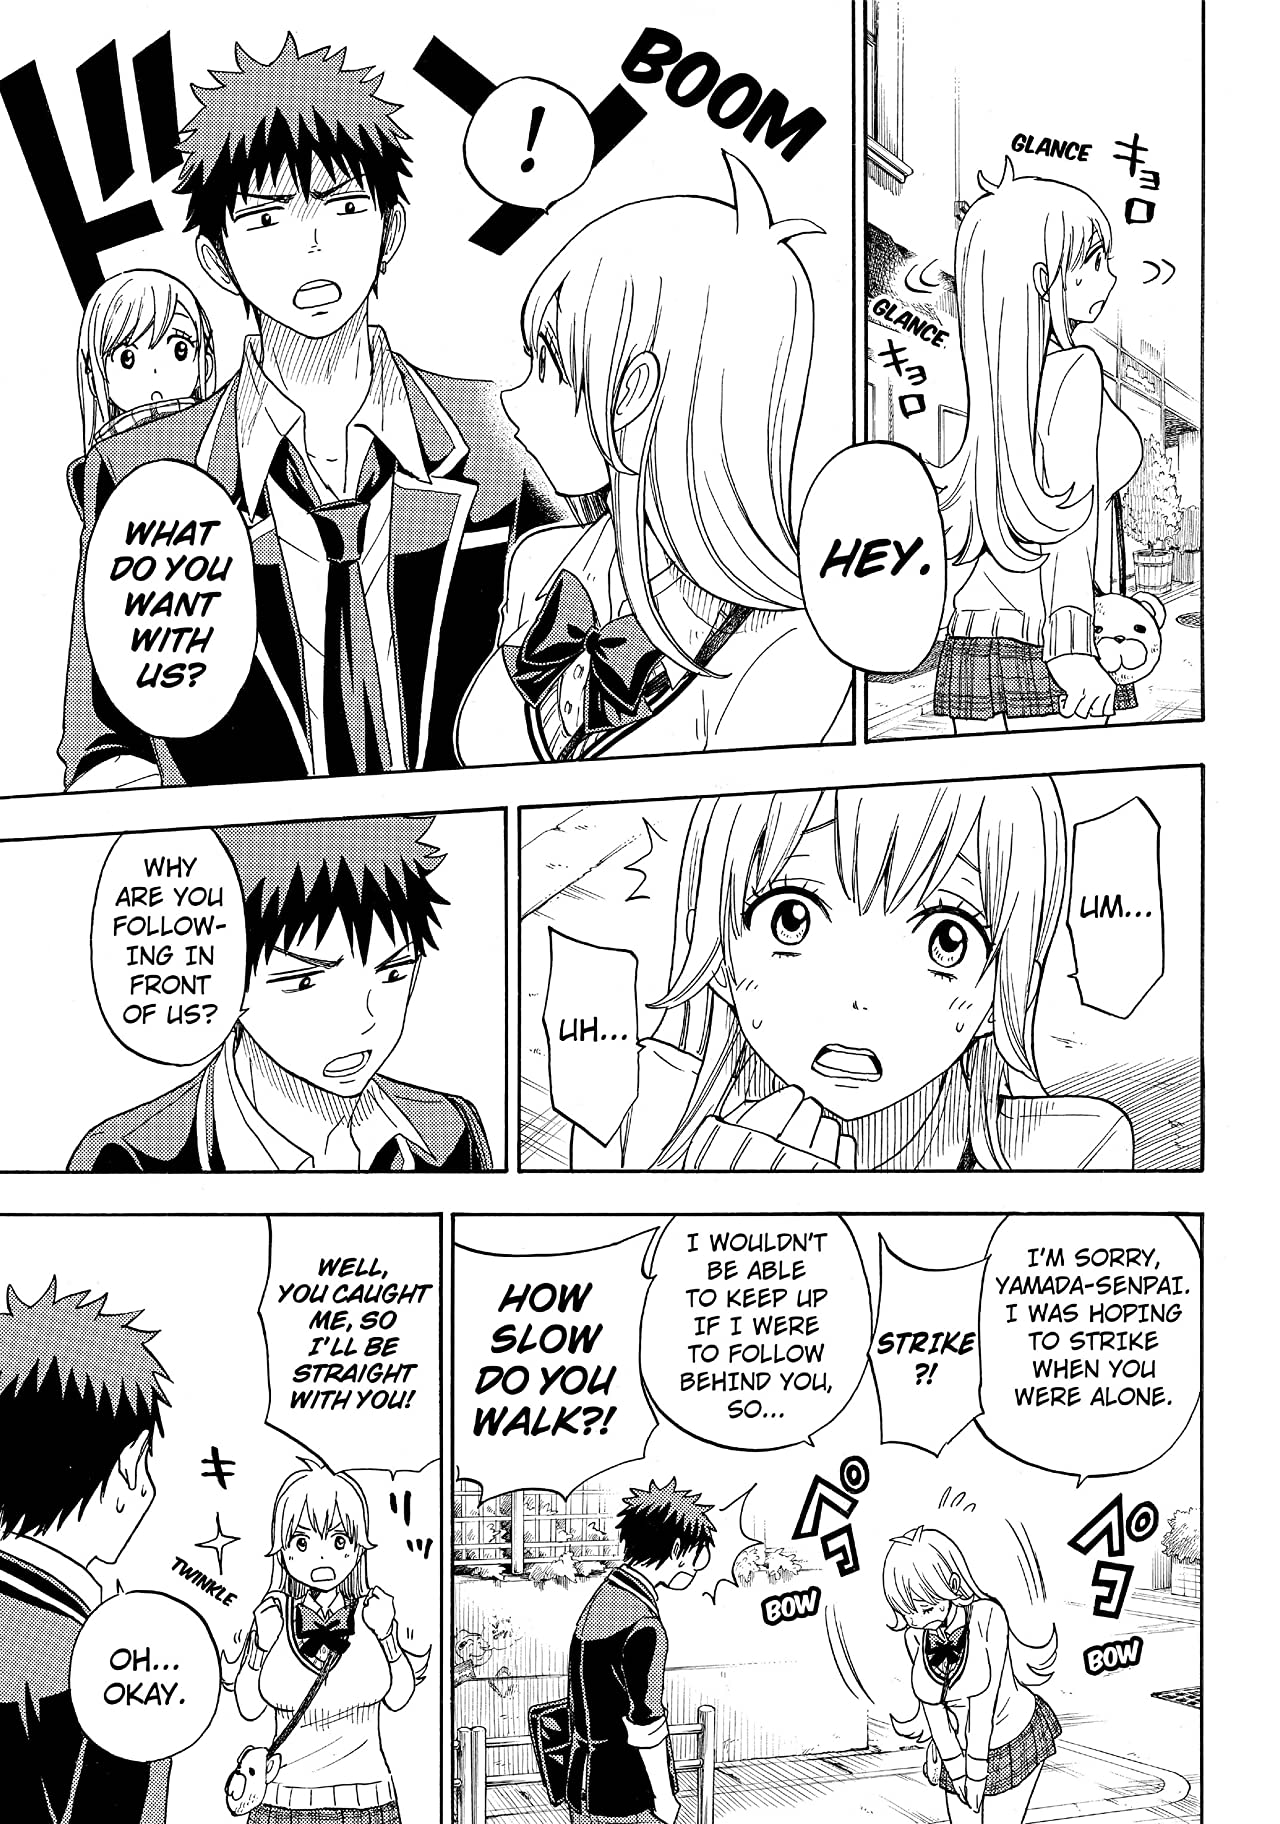 Yamada-kun and the Seven Witches #93